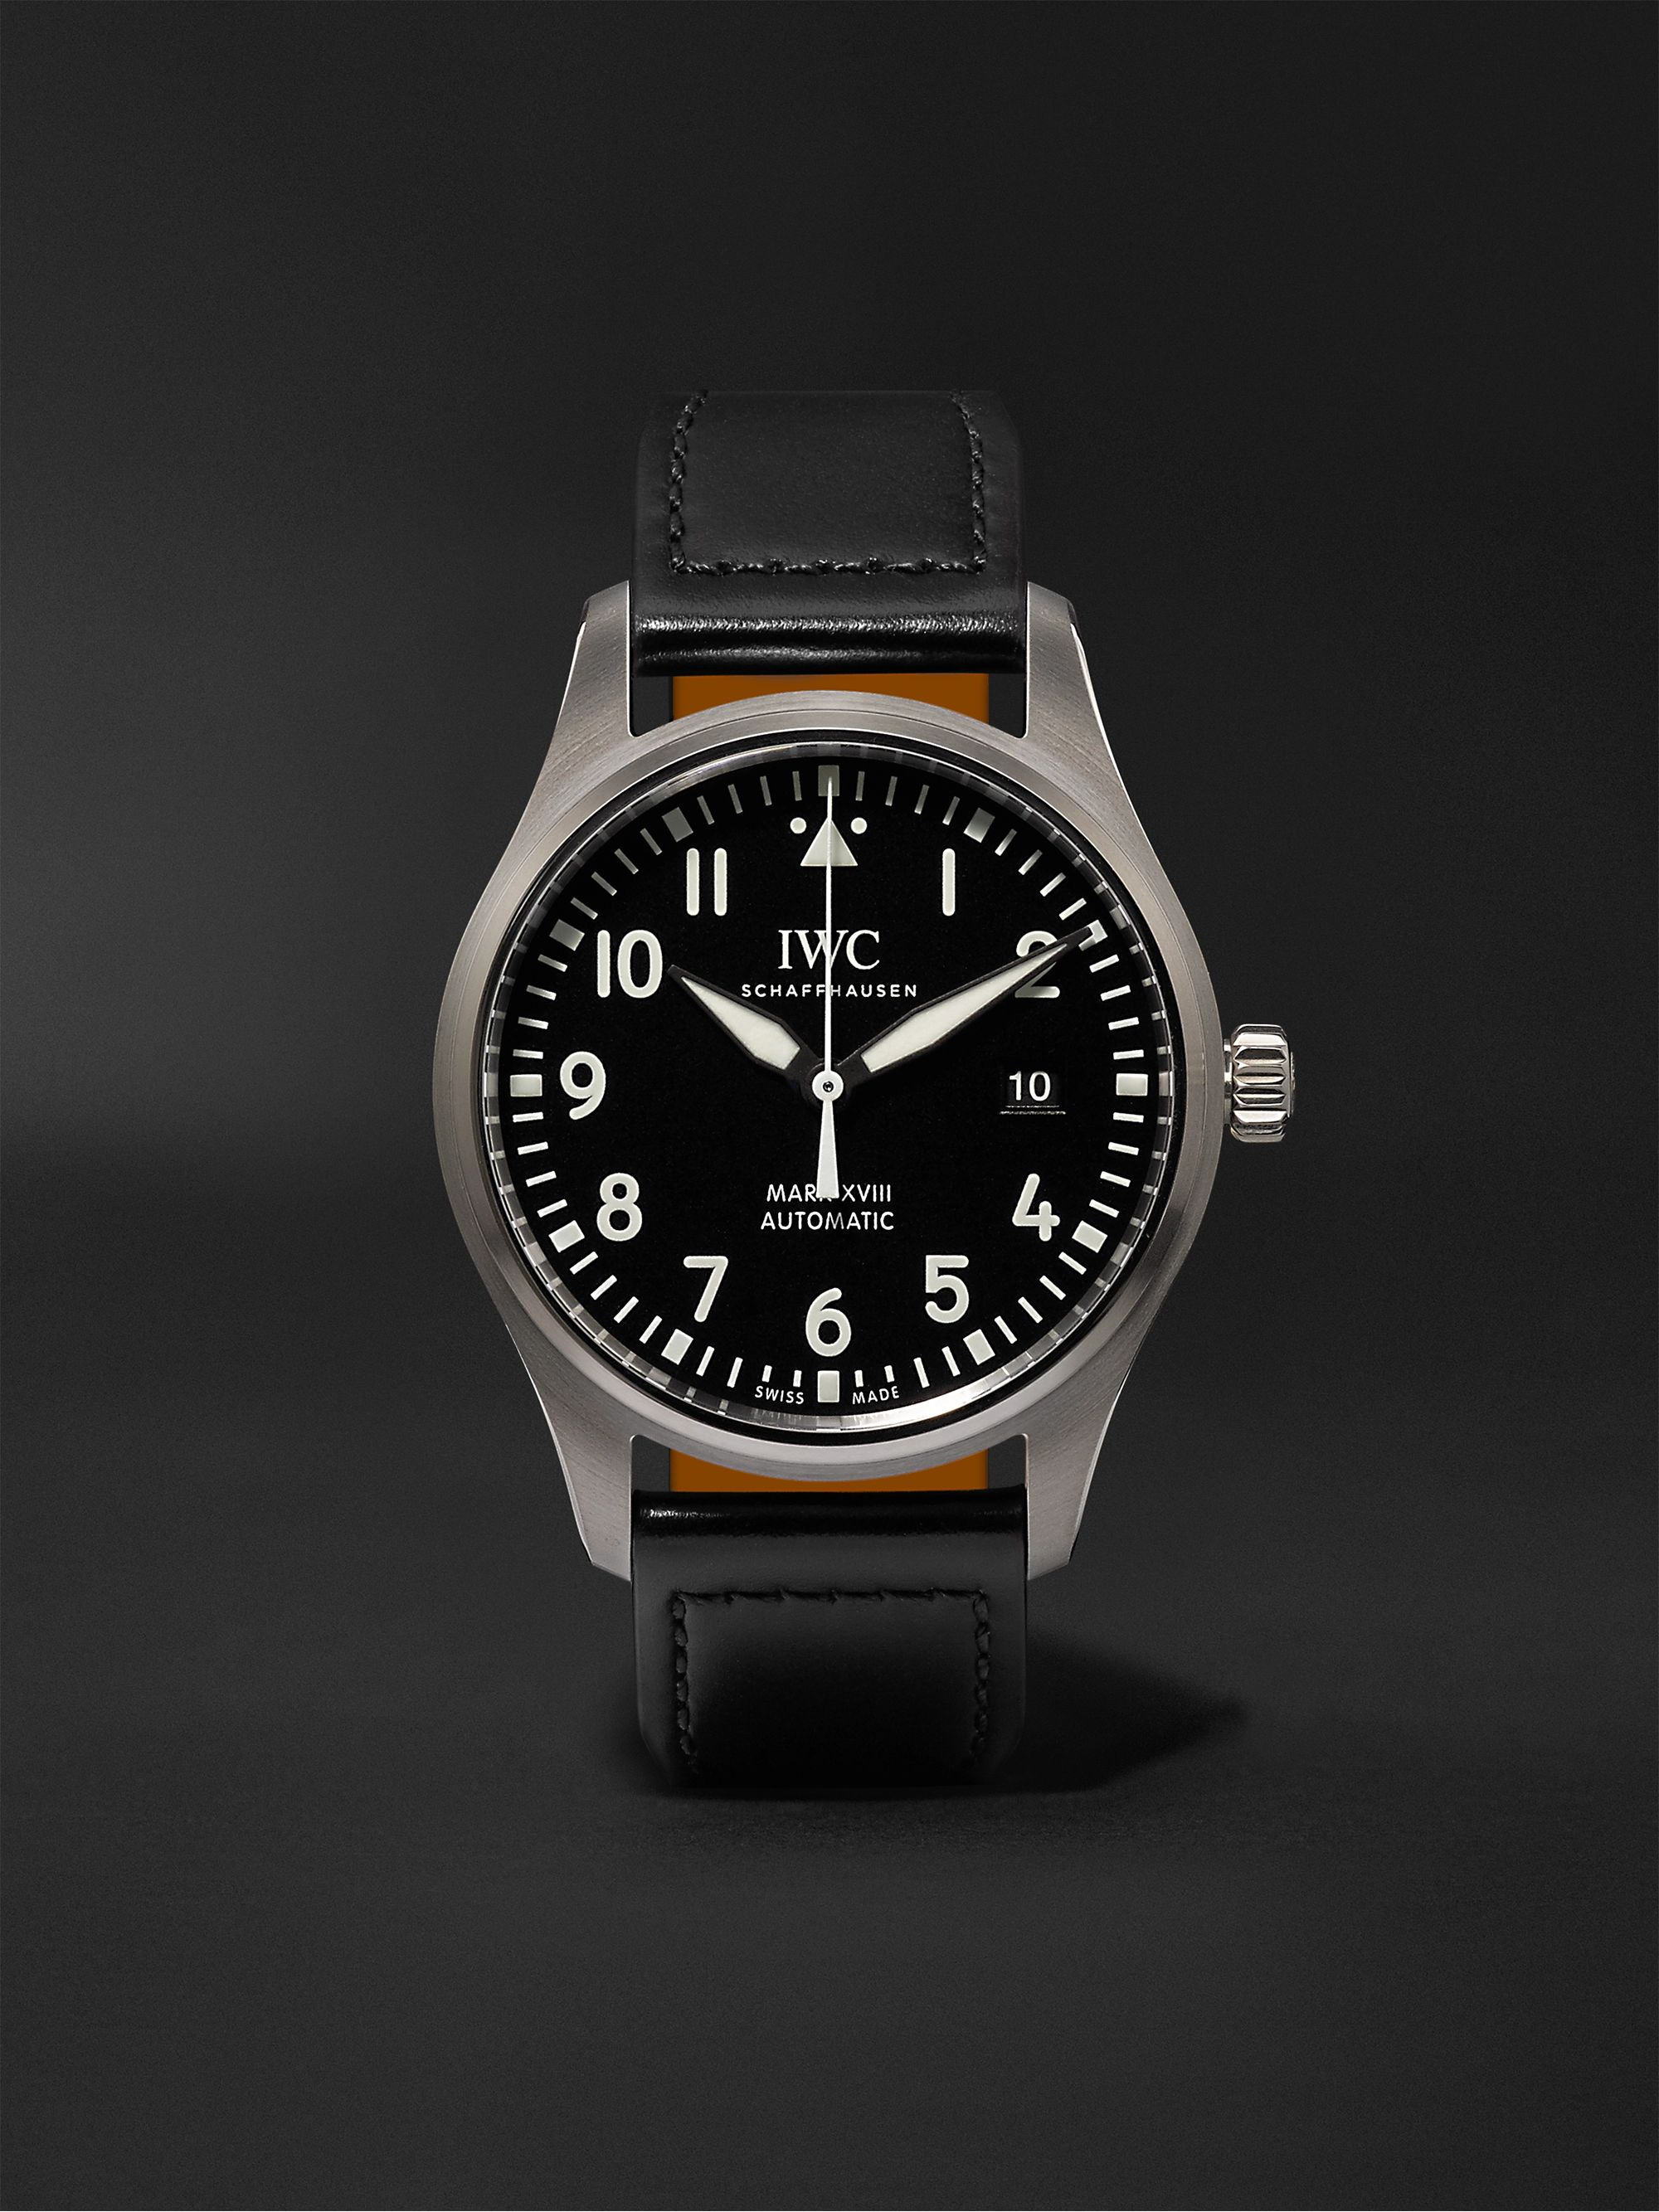 IWC SCHAFFHAUSEN Pilot's Mark XVIII Automatic 40mm Stainless Steel and Leather Watch, Ref. No. IW327009